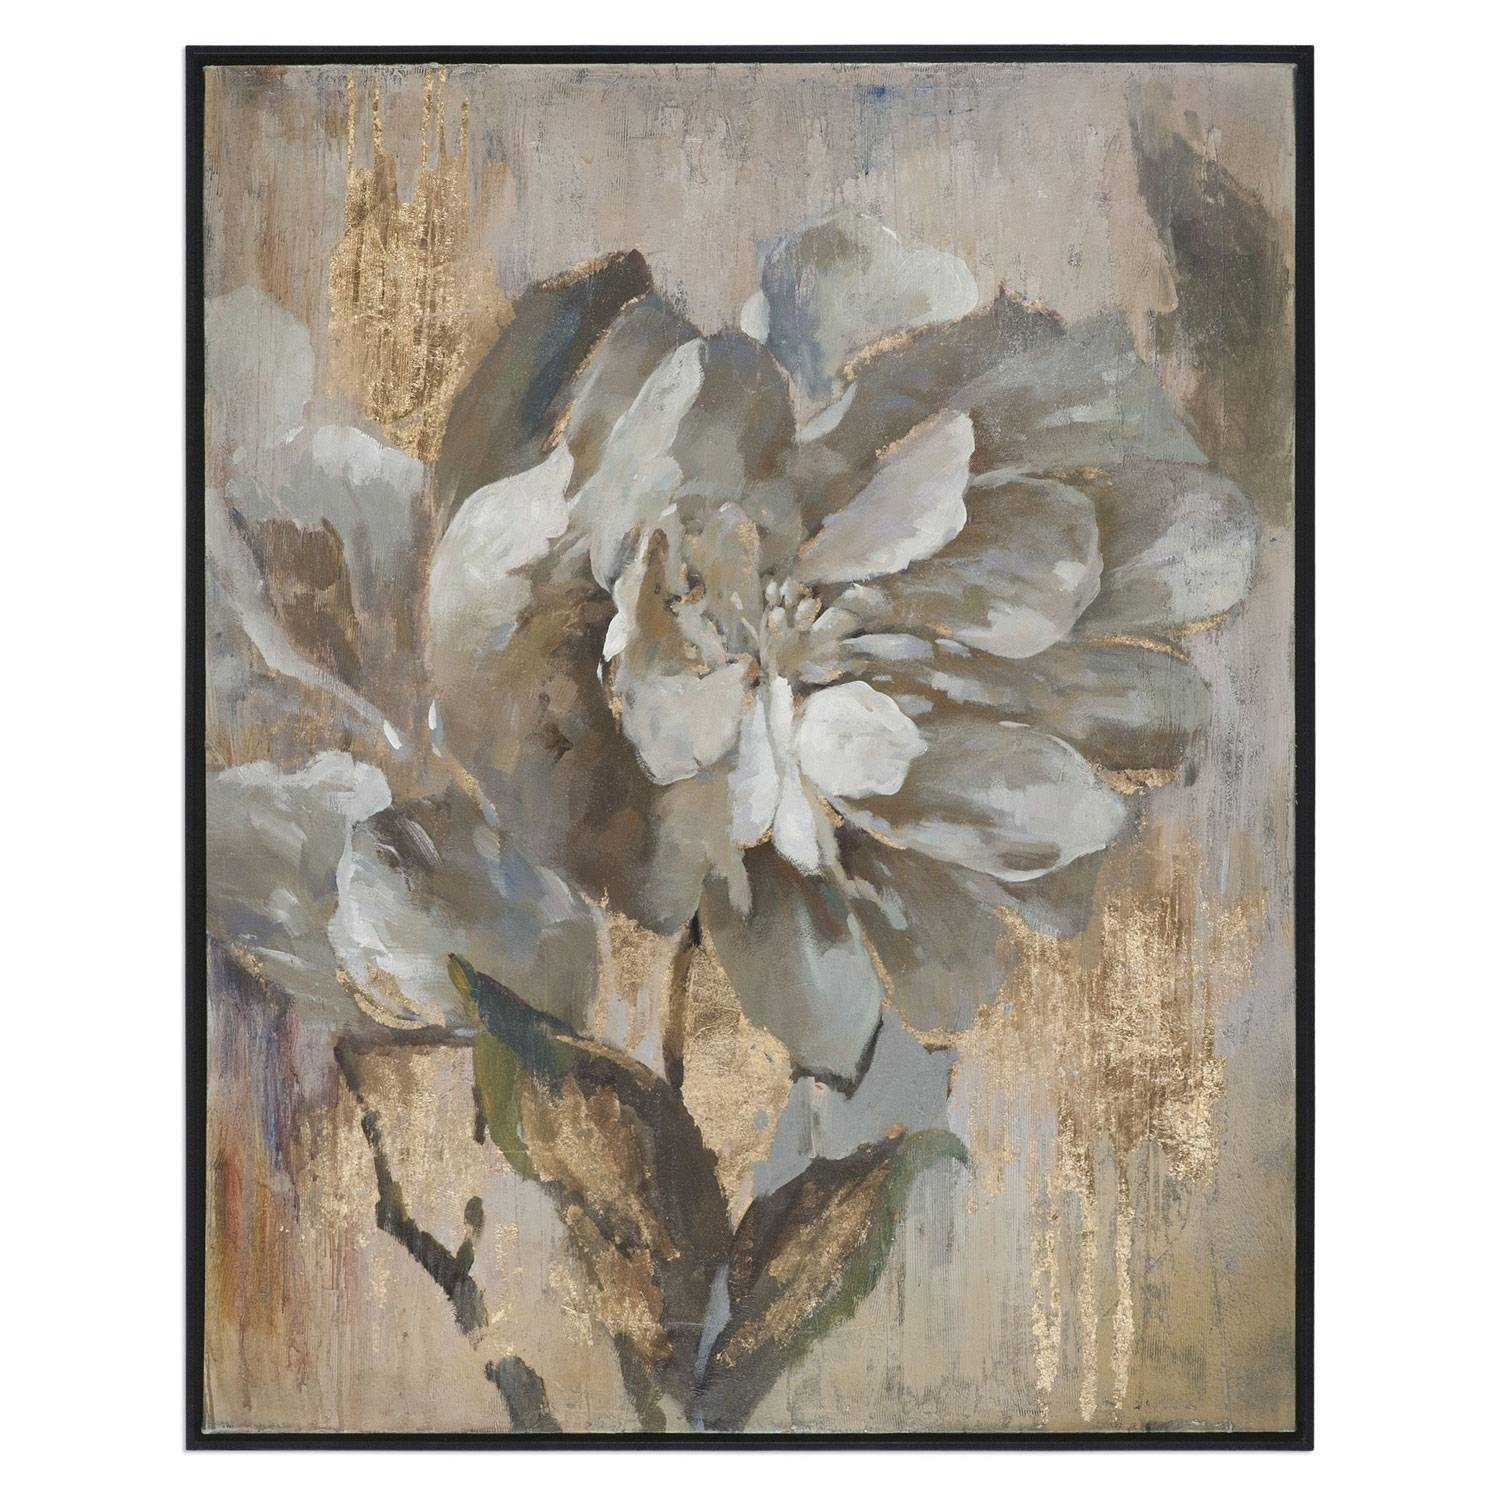 Dazzlinggrace Feyock: 41 X 51 Inch Wall Art Uttermost Wall Art Throughout Most Up To Date Grace Wall Art (View 17 of 25)